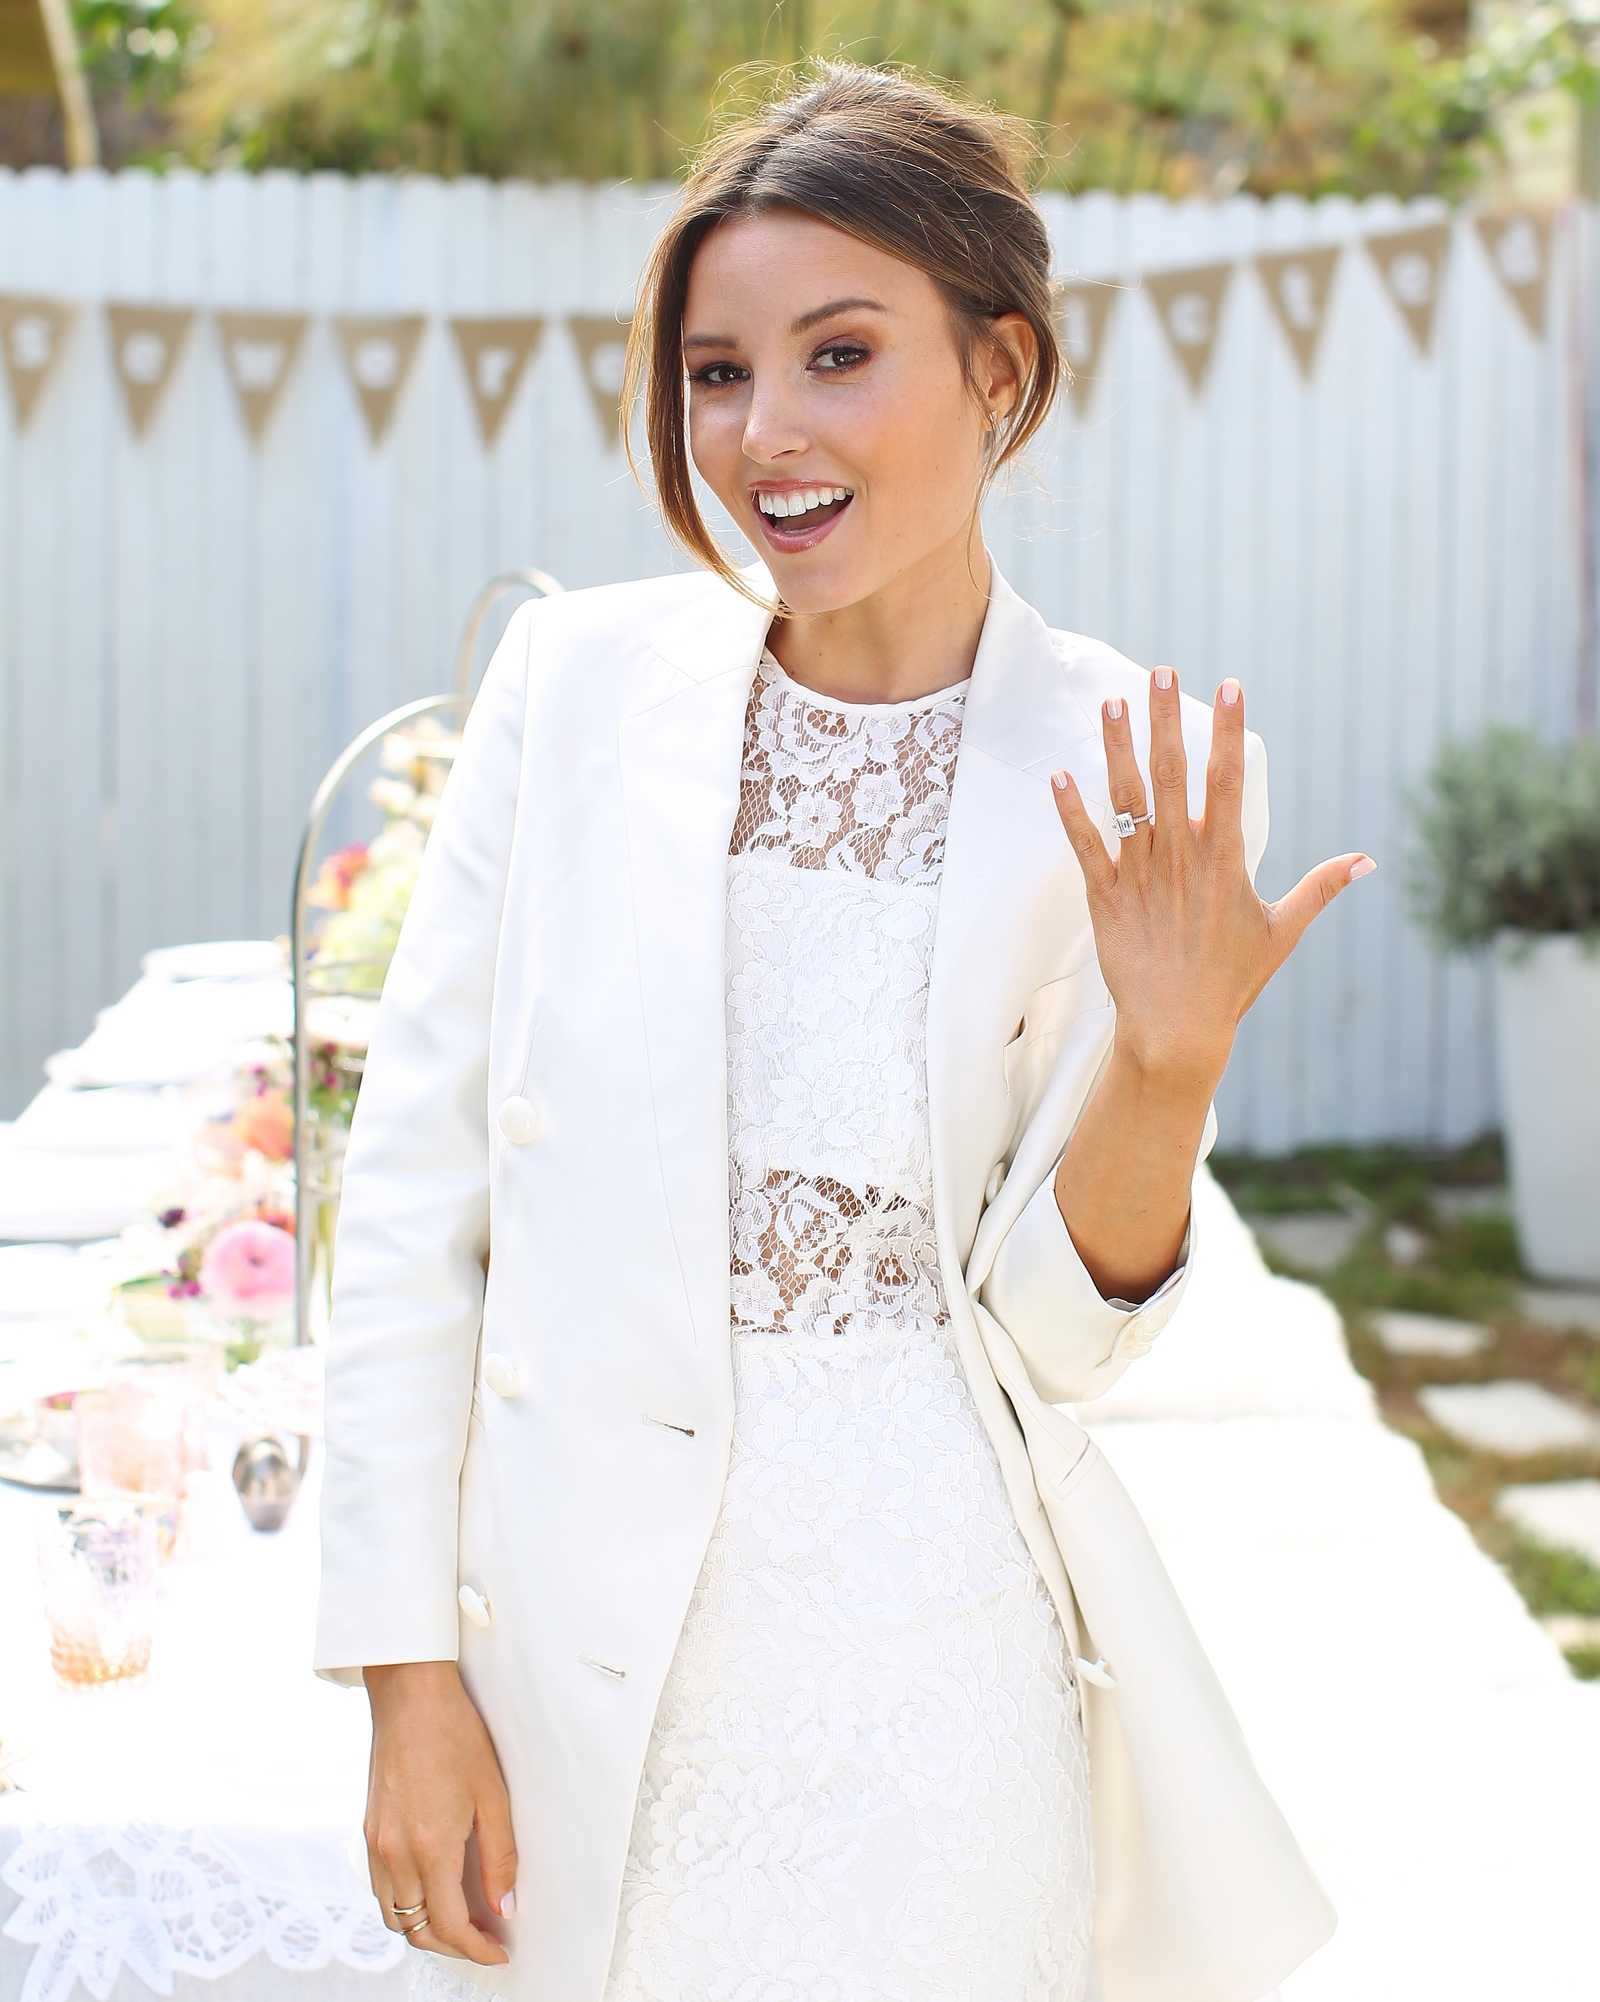 A Shabby-Chic Party for Blogger and Bride-to-Be Geri Hirsch